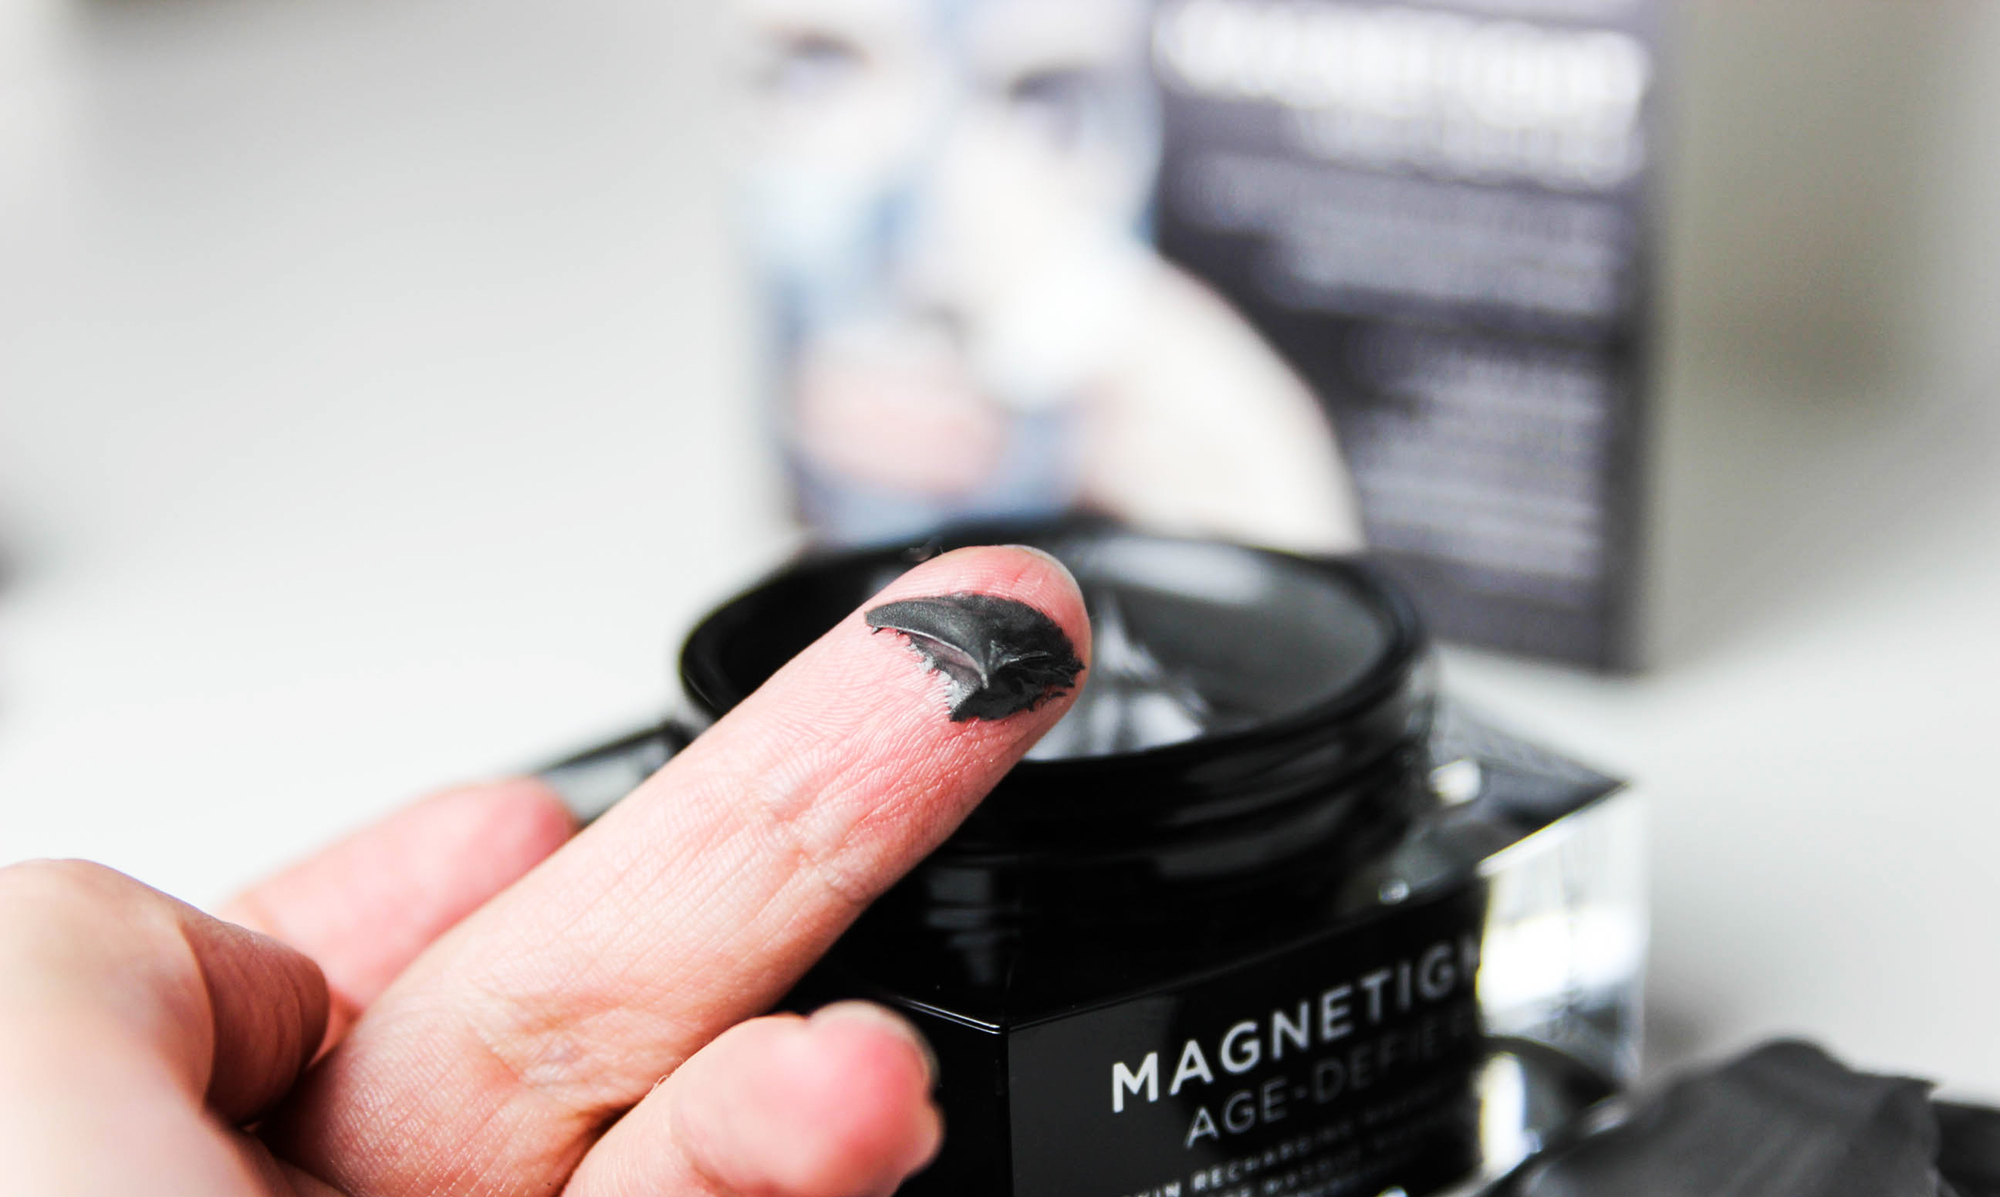 Magnetight_masque-Dr Brandt-14